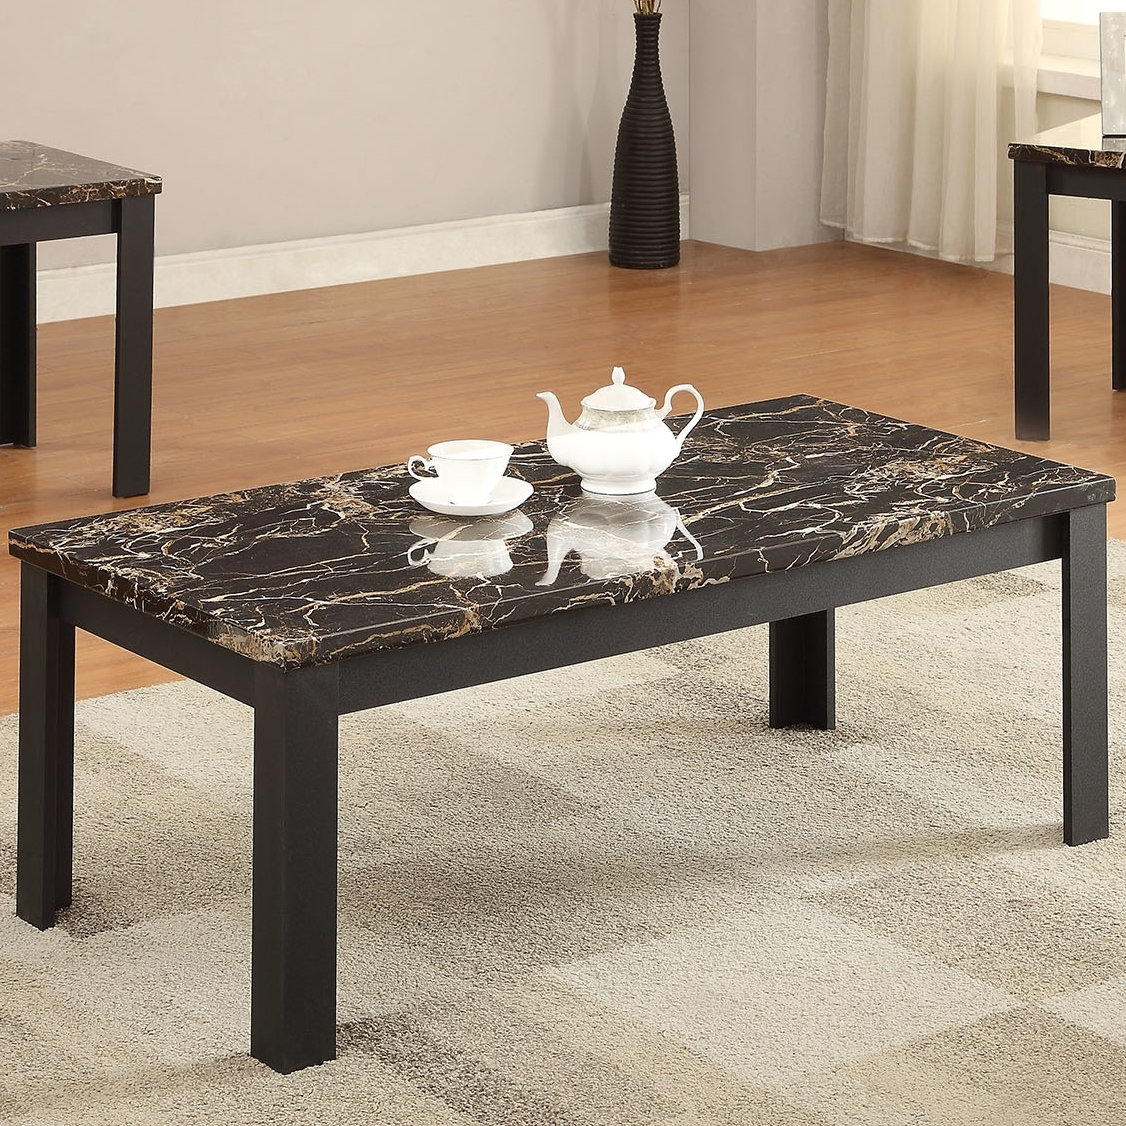 Acme Furniture Carly 3 Piece Coffee Table Set & Reviews | Wayfair (Image 3 of 20)